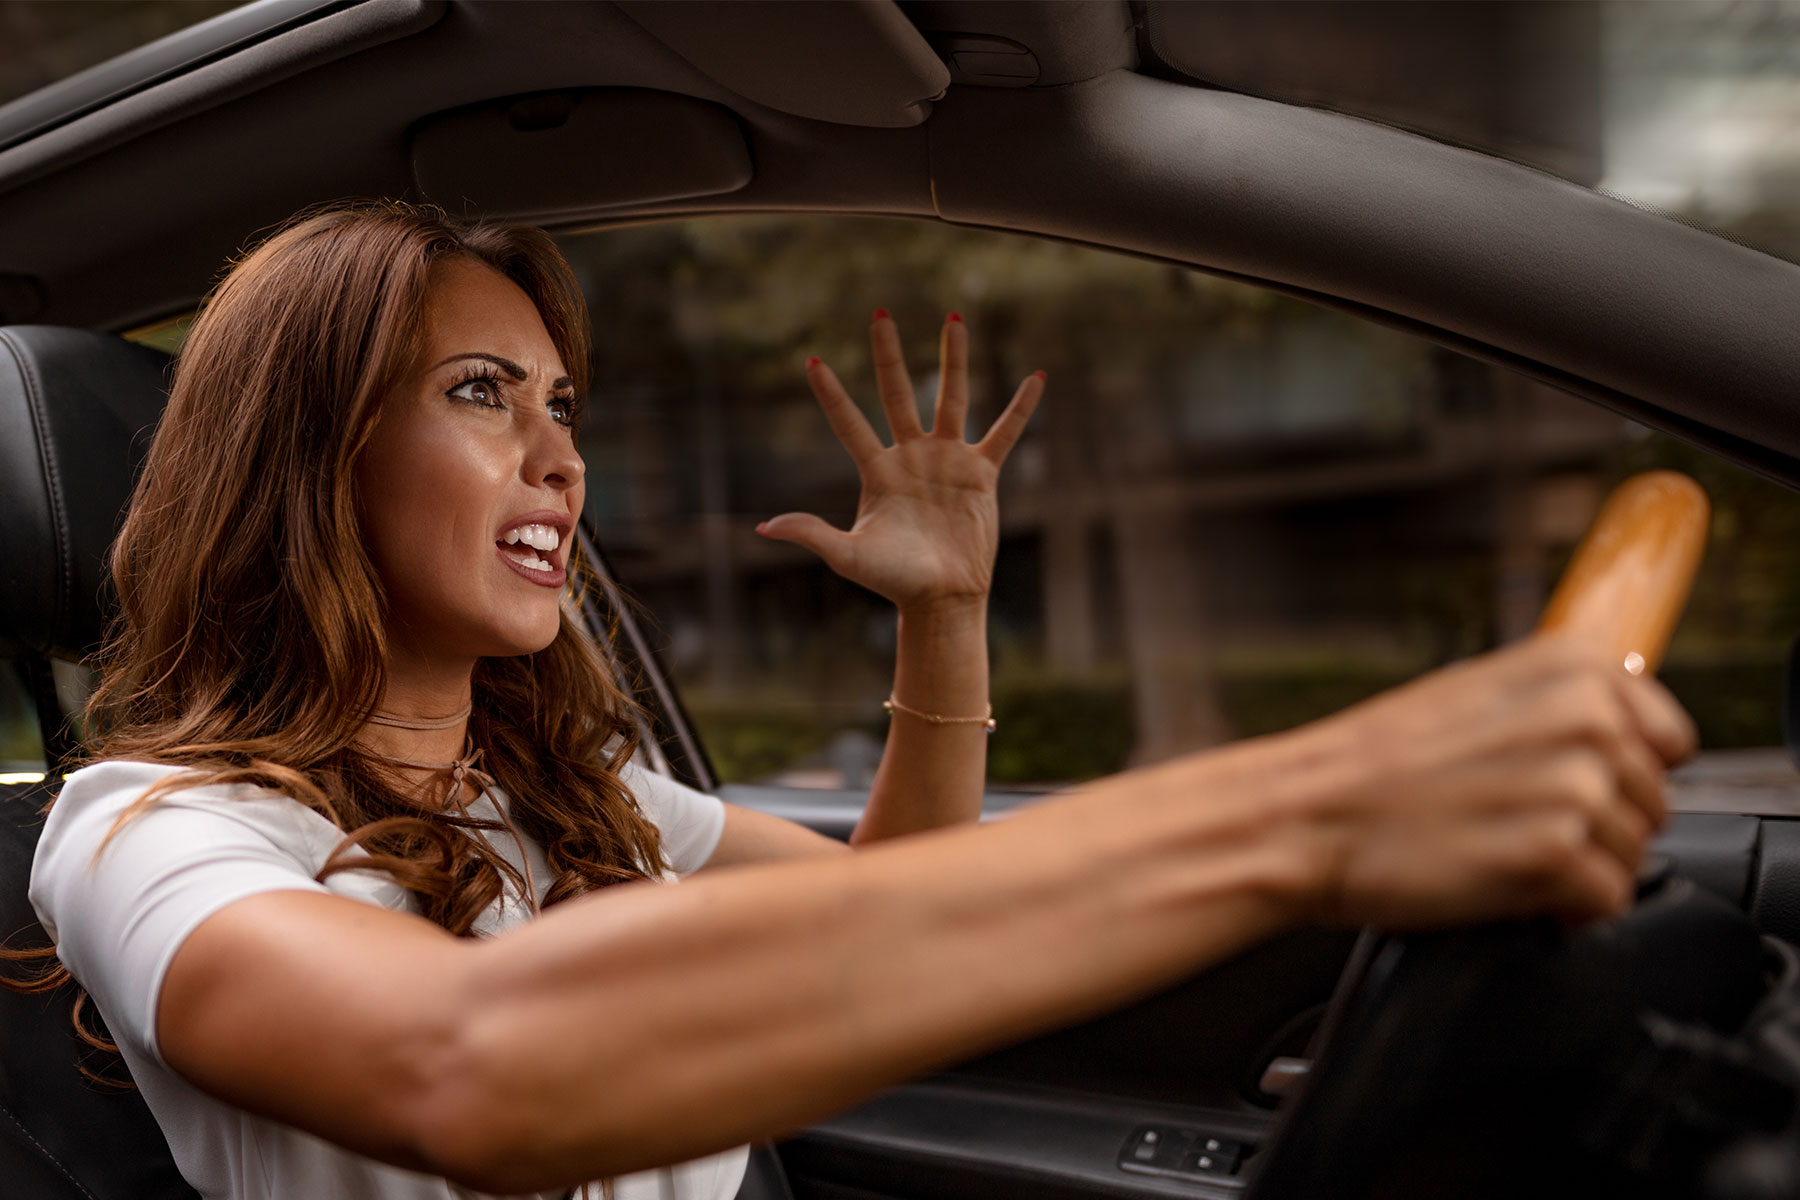 A woman driving, getting angry